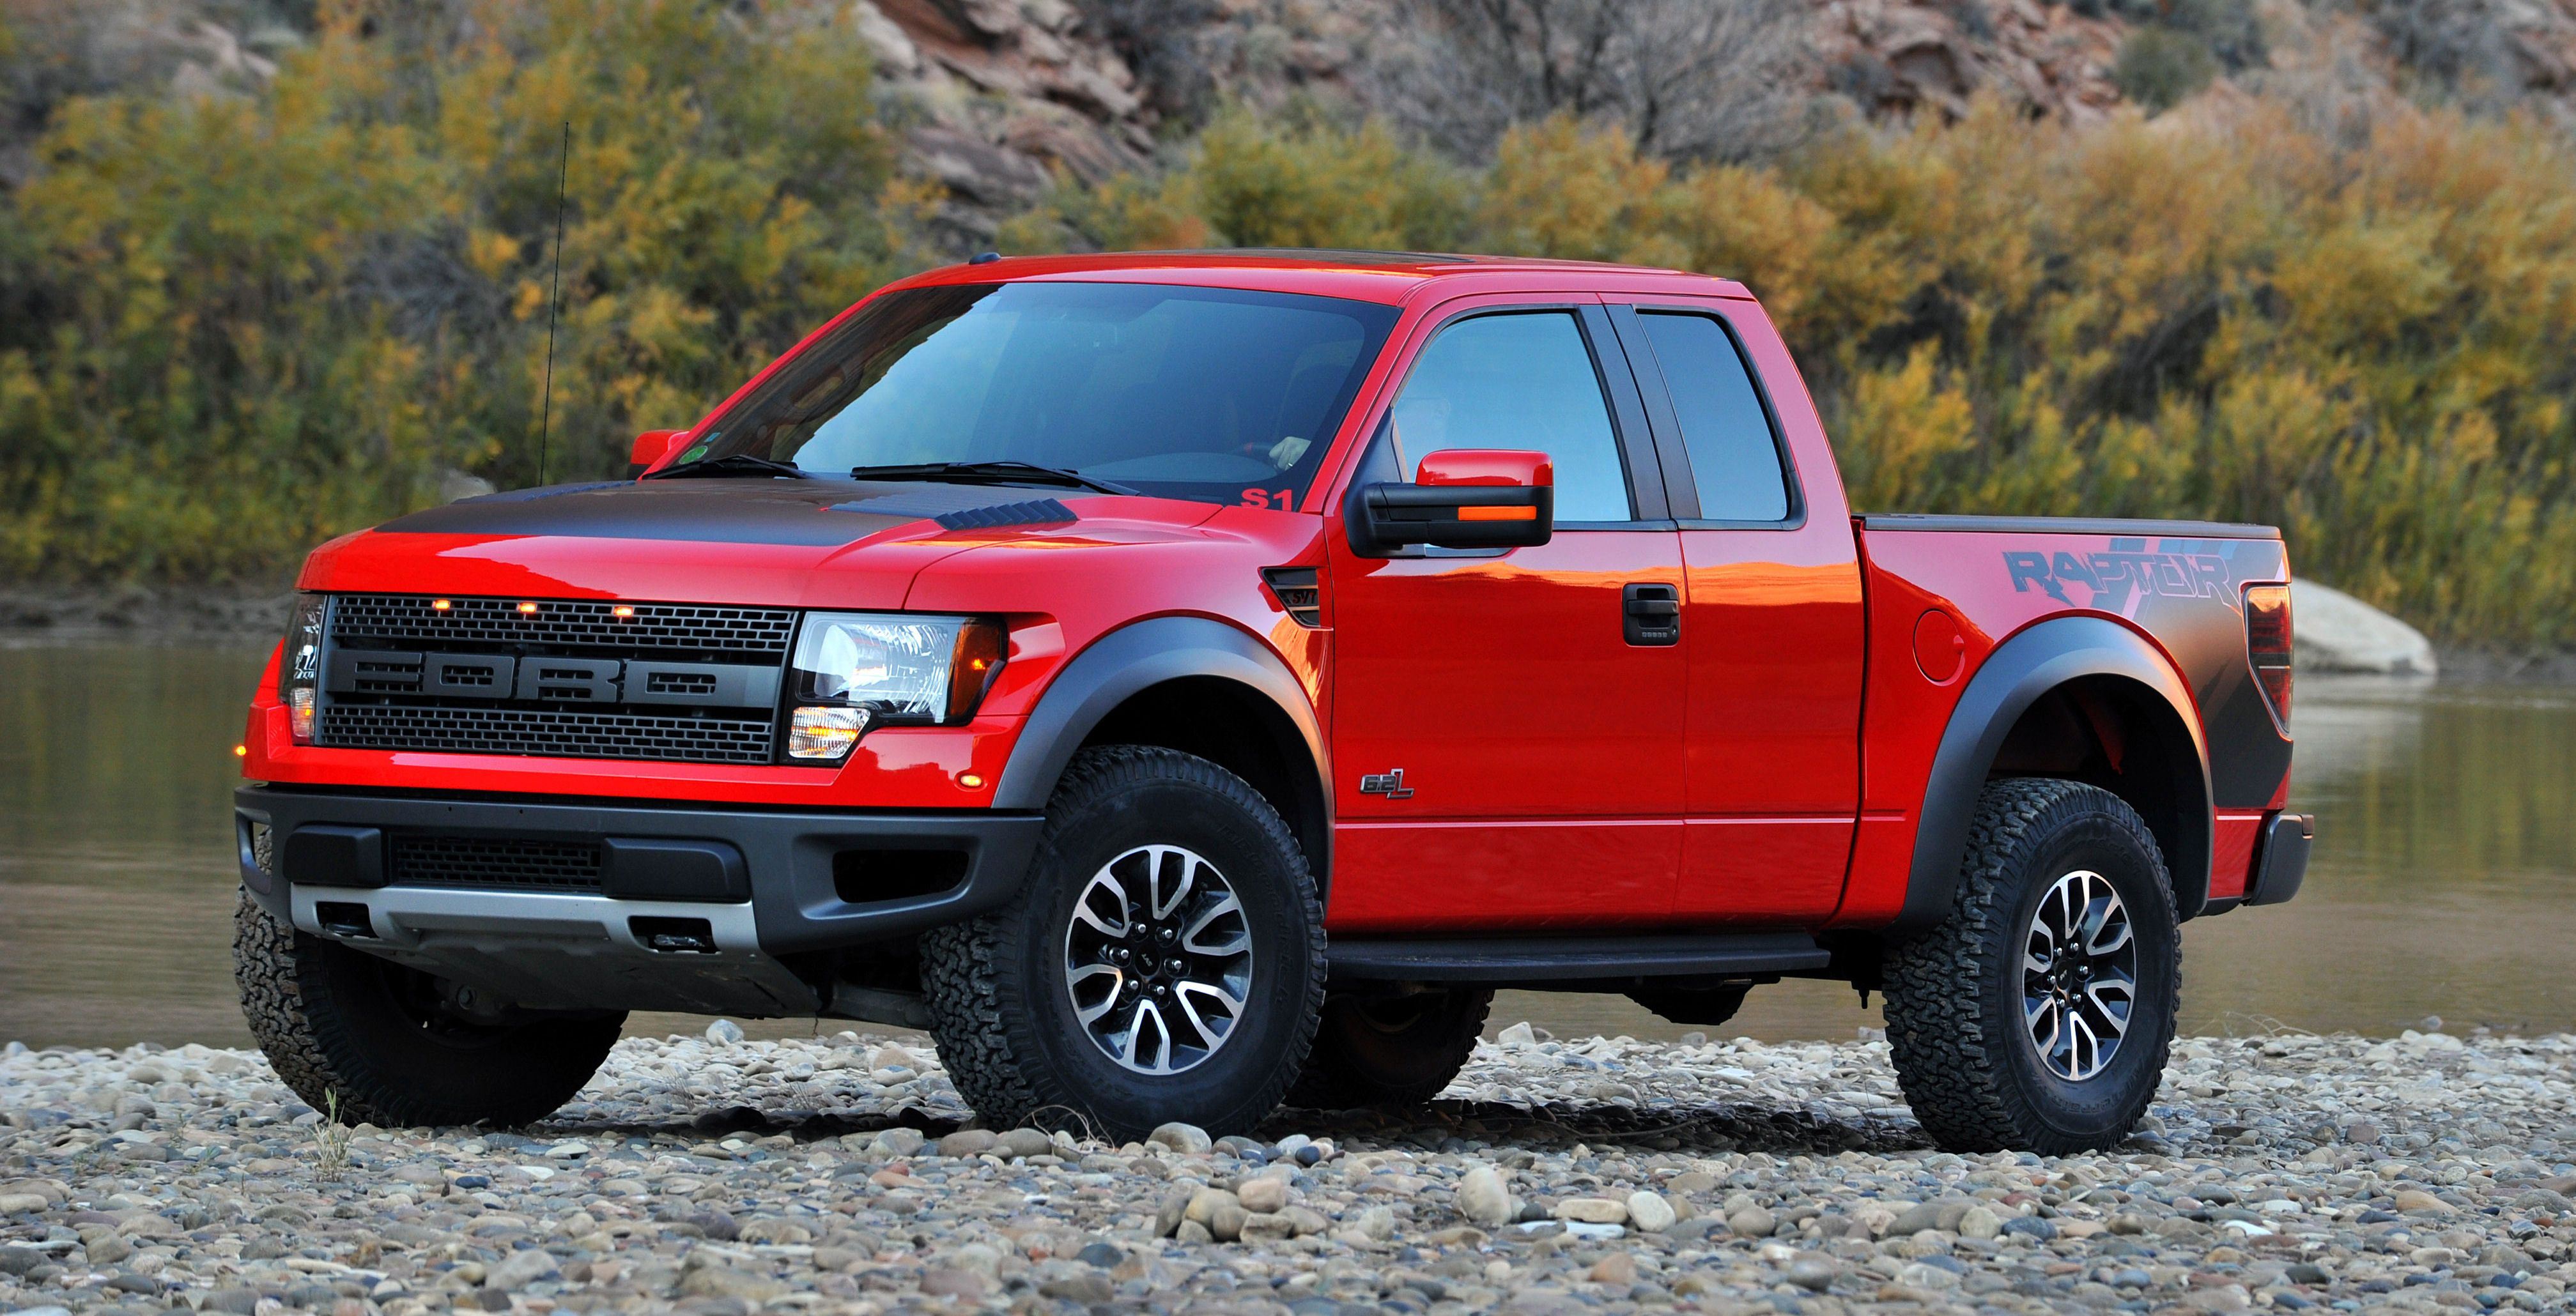 Red and black ford svt raptor truck could be mine one day